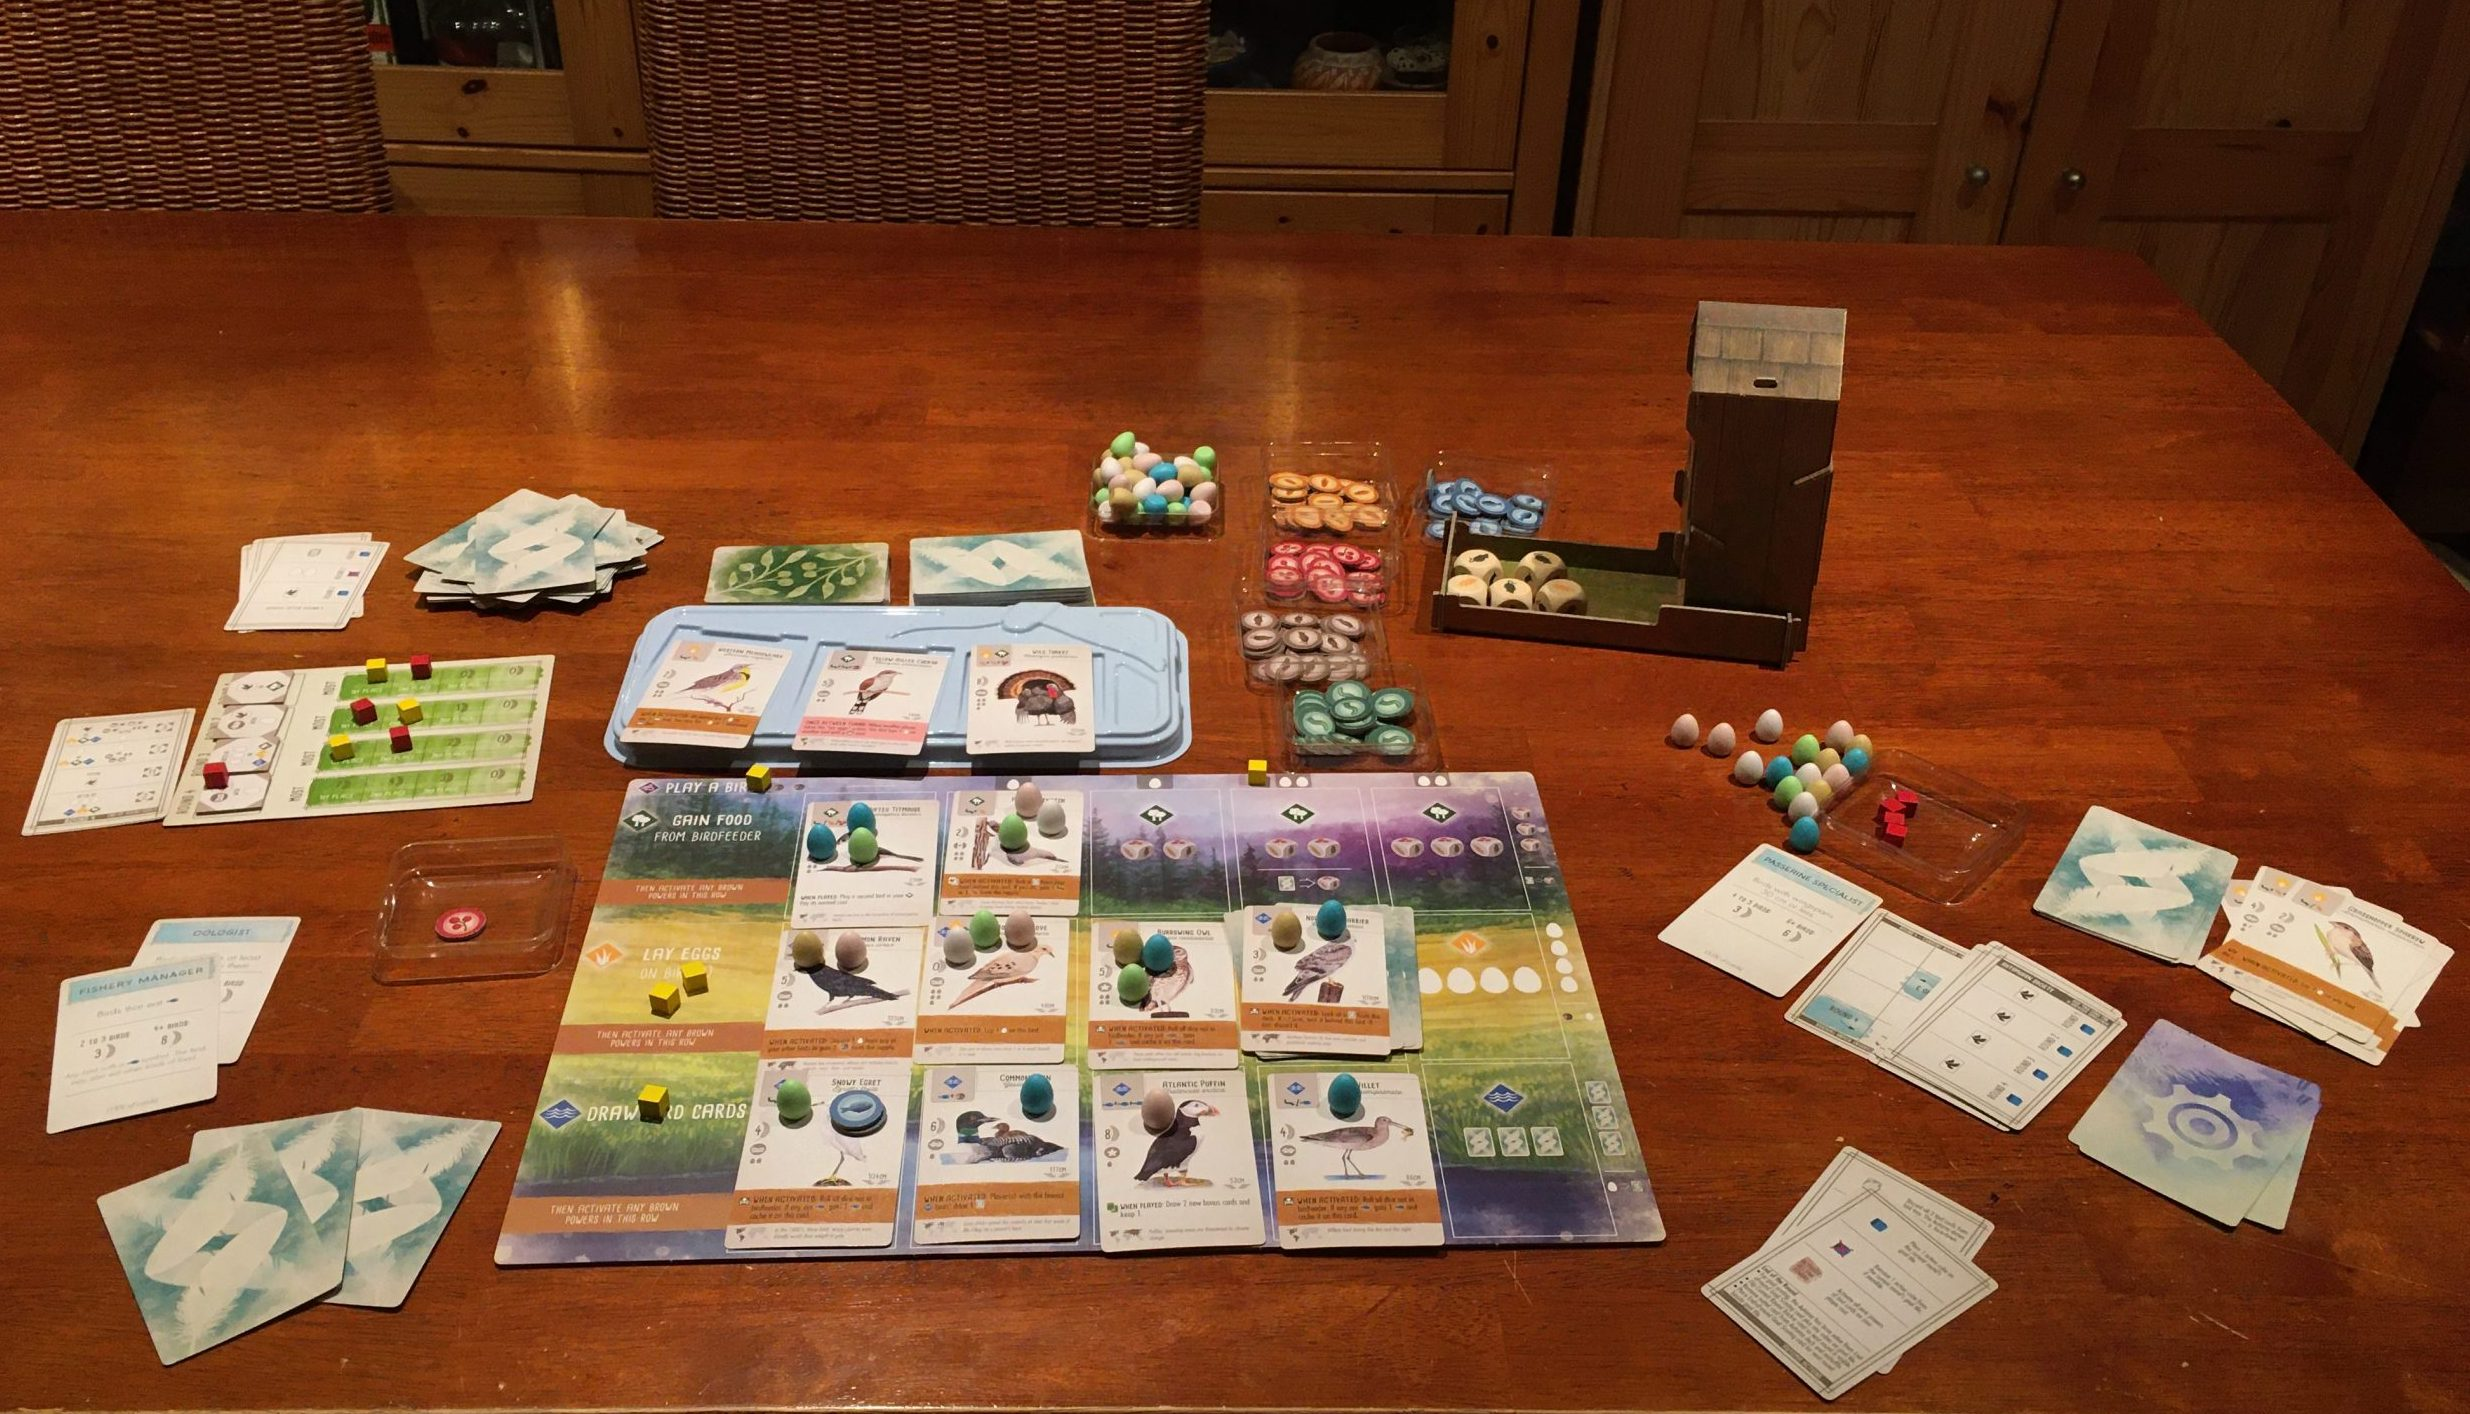 Wingspan single player game version Automa in play